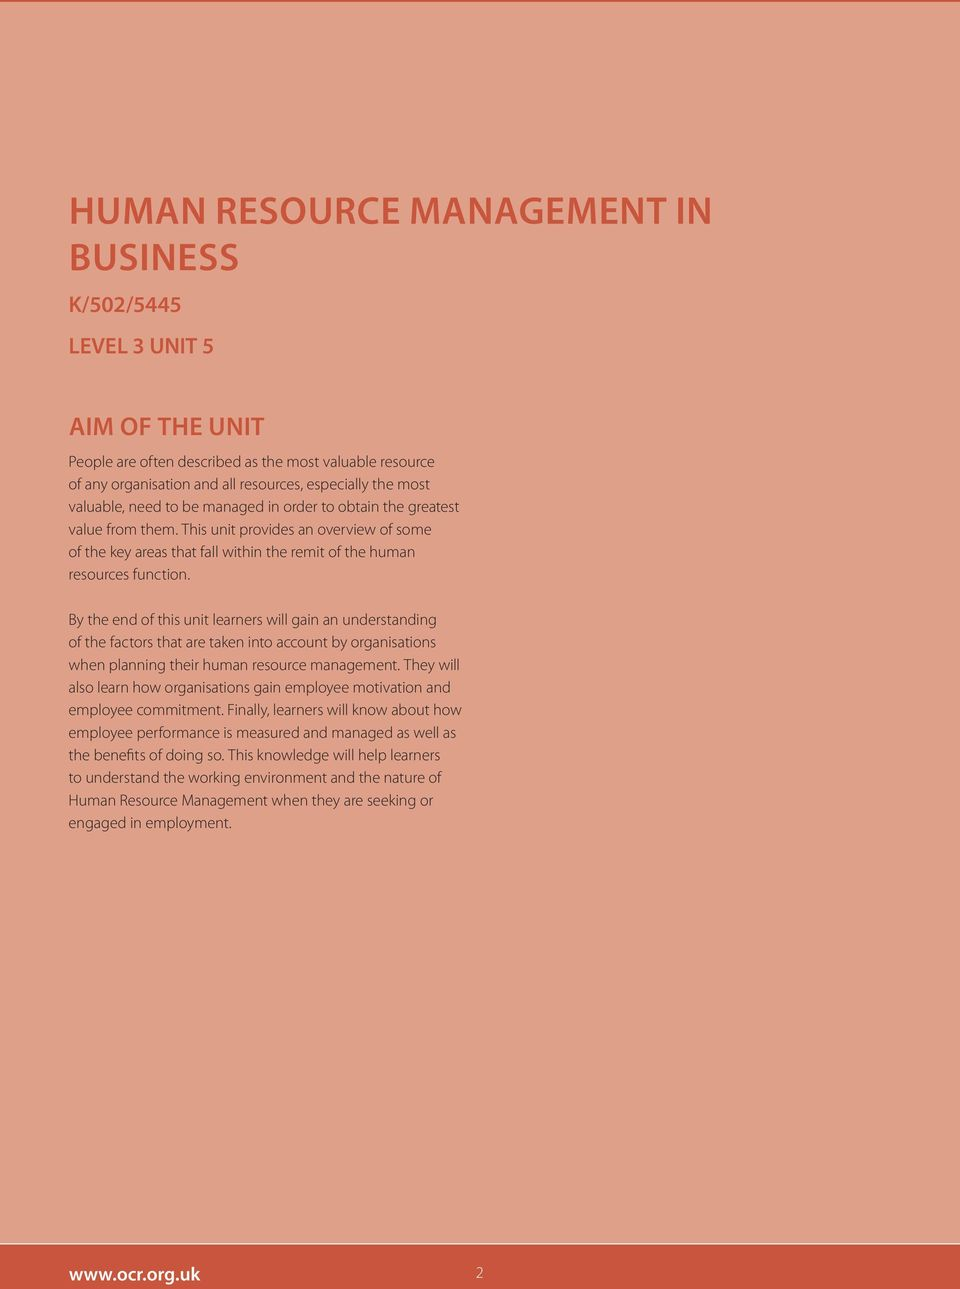 By the end of this unit learners will gain an understanding of the factors that are taken into account by organisations when planning their human resource management.